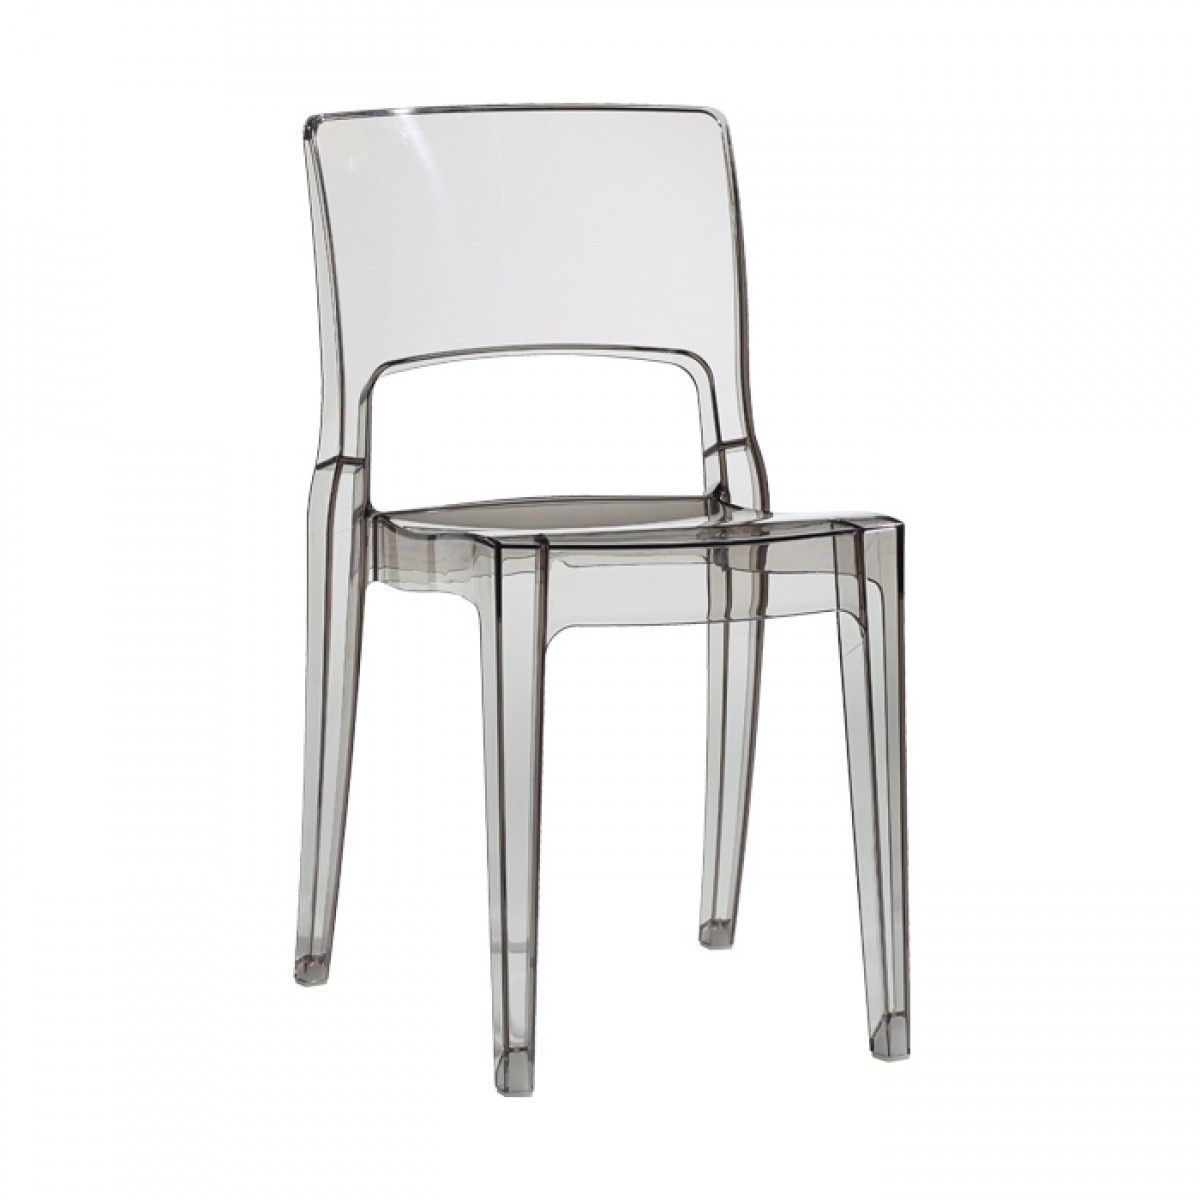 Euro Style Isy Clear Polycarbonate Anti Shock Dining Chair Clear  # Muebles Linea Huno